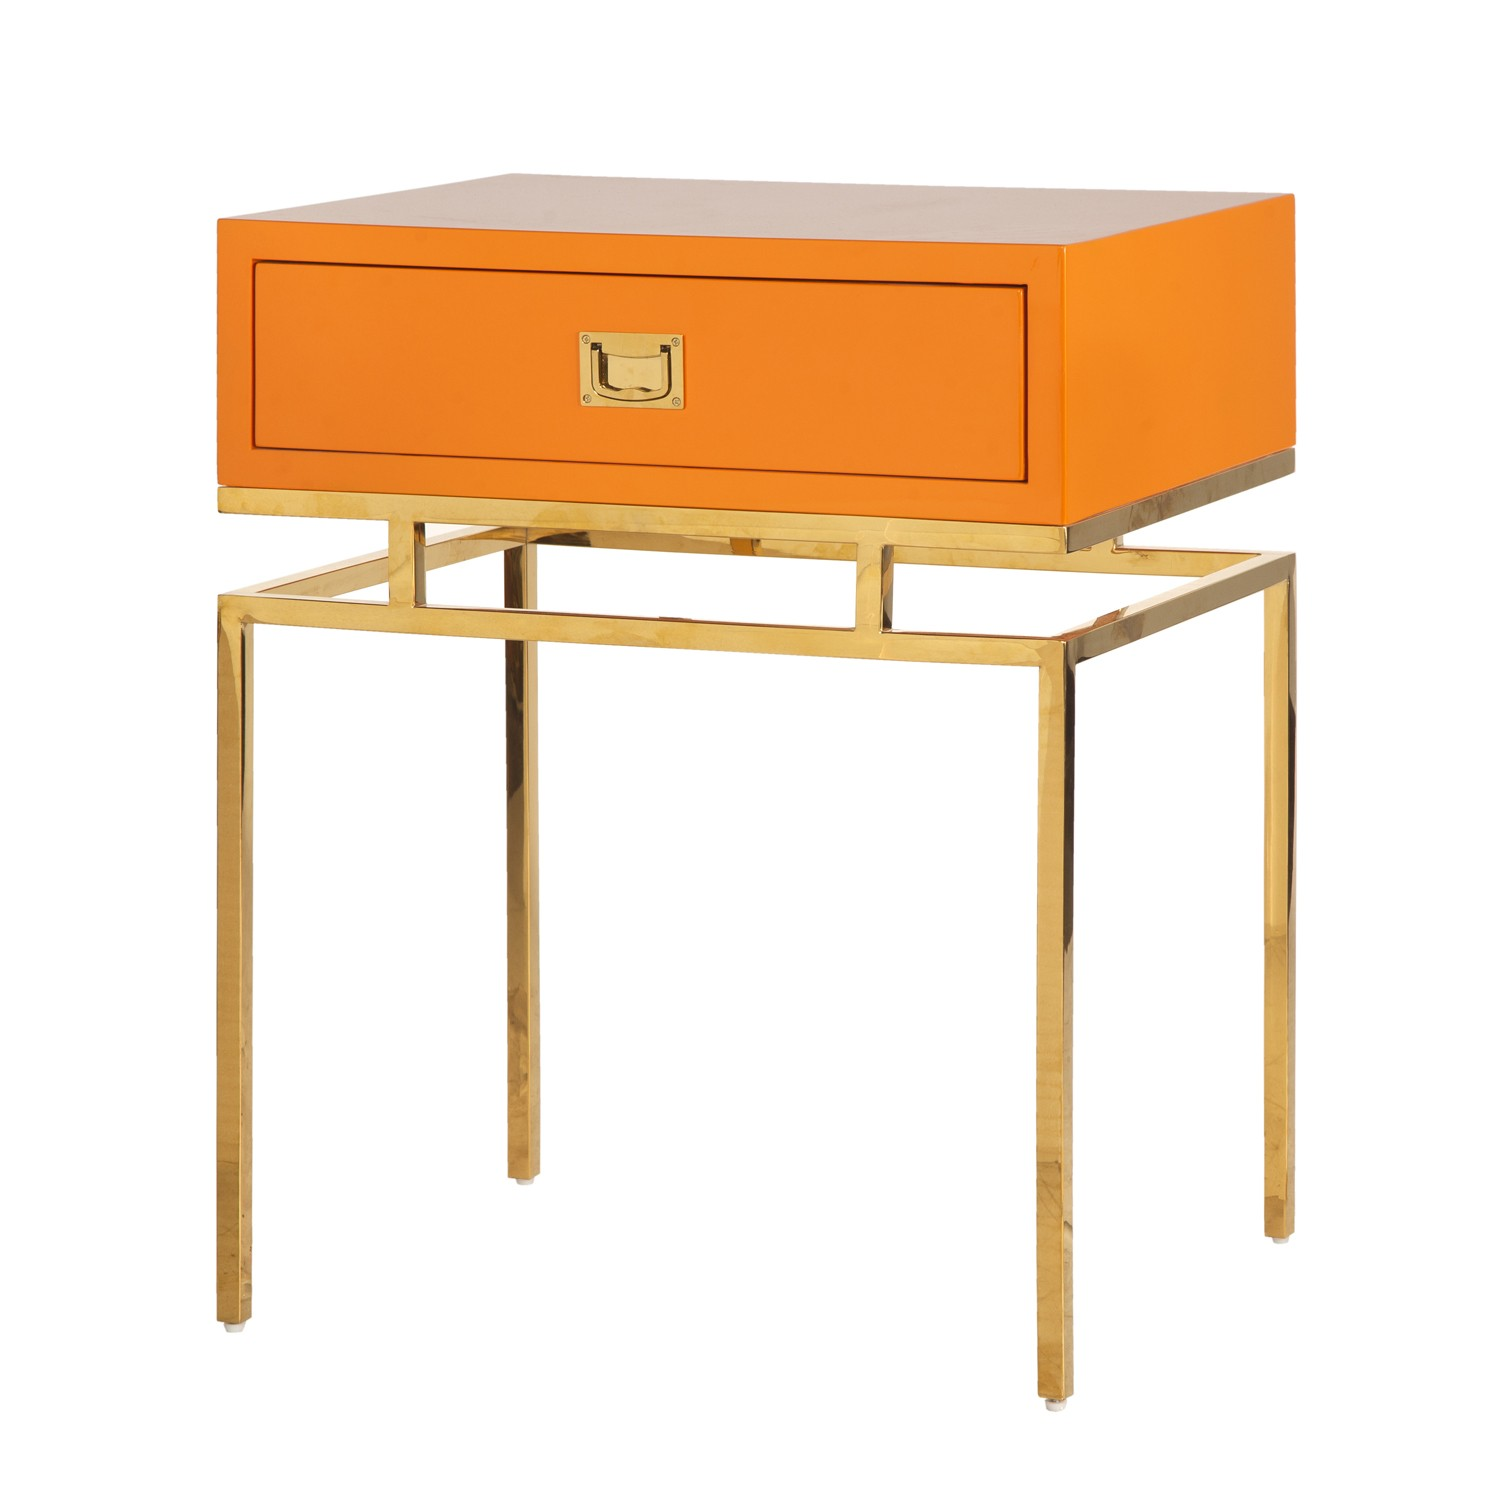 brinson lacquer side table mecox gardens fnst timor wood trunk accent sofa bench ikea inch console ashley furniture office desk small patio set clearance trestle base outdoor